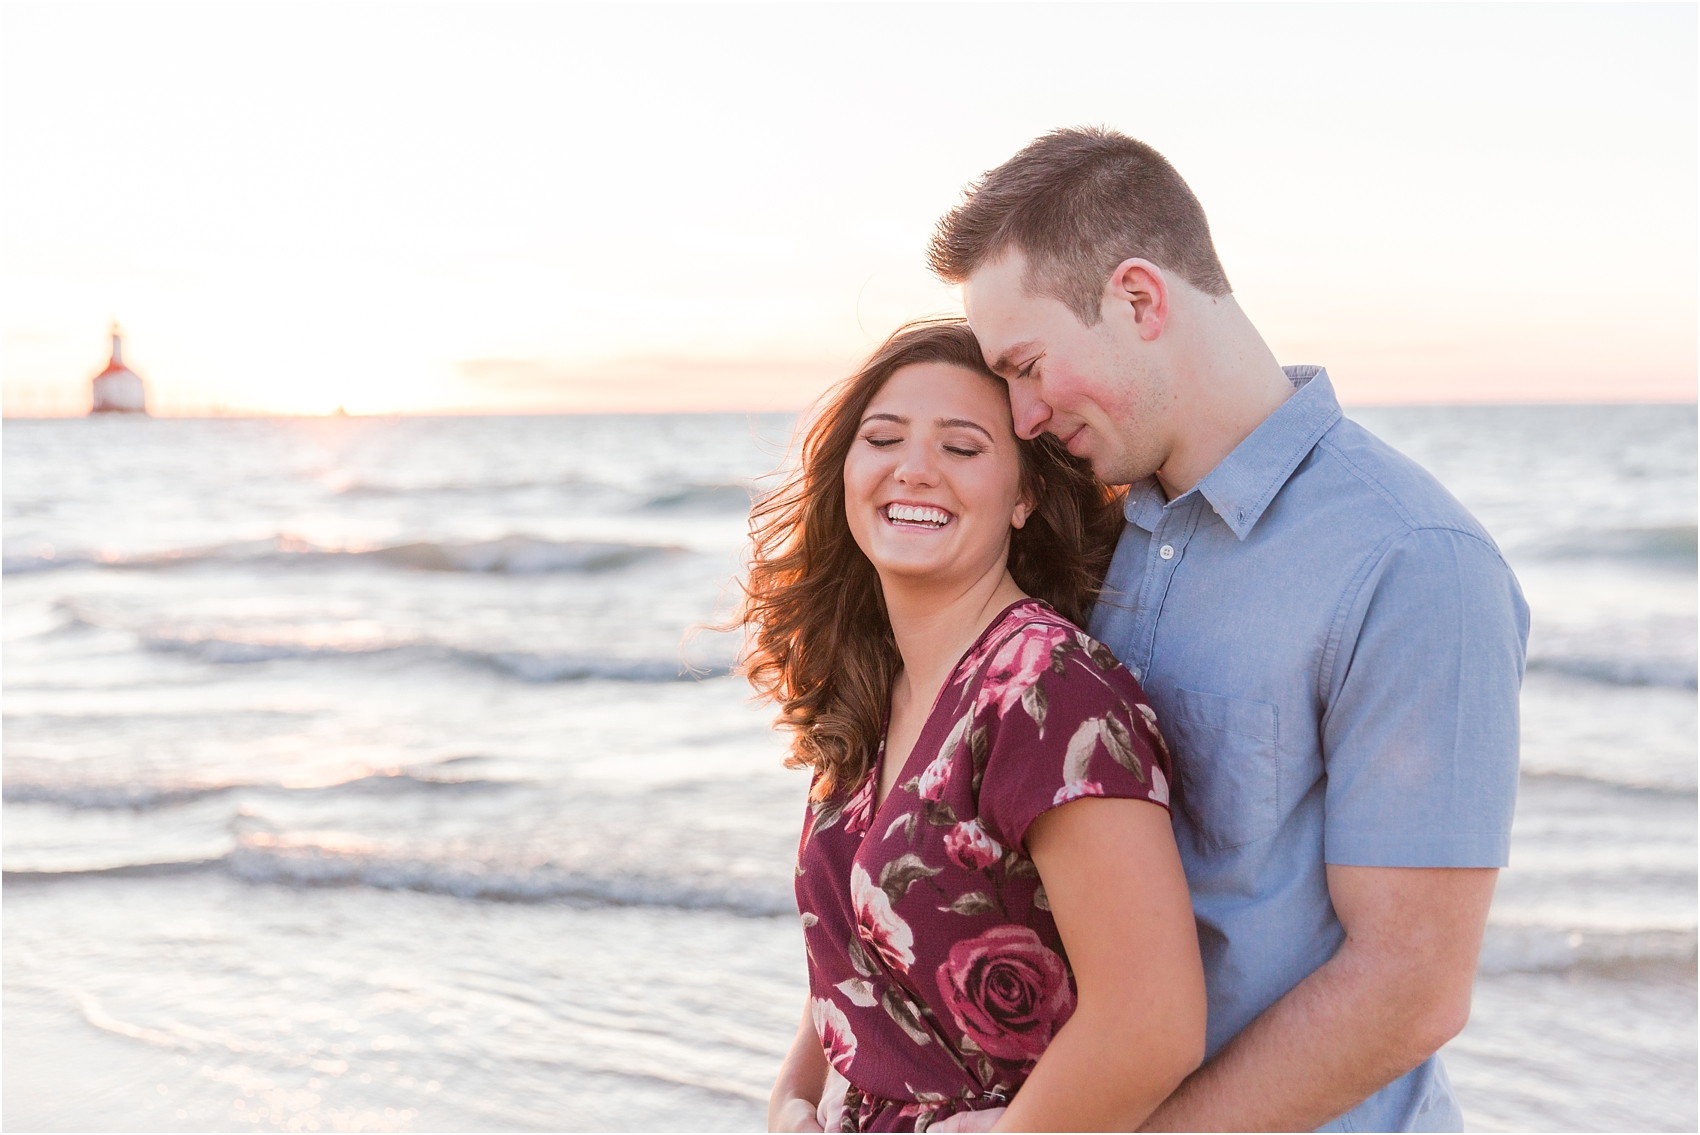 candid-end-of-summer-sunset-engagement-photos-at-silver-beach-in-st-joseph-mi-by-courtney-carolyn-photography_0033.jpg